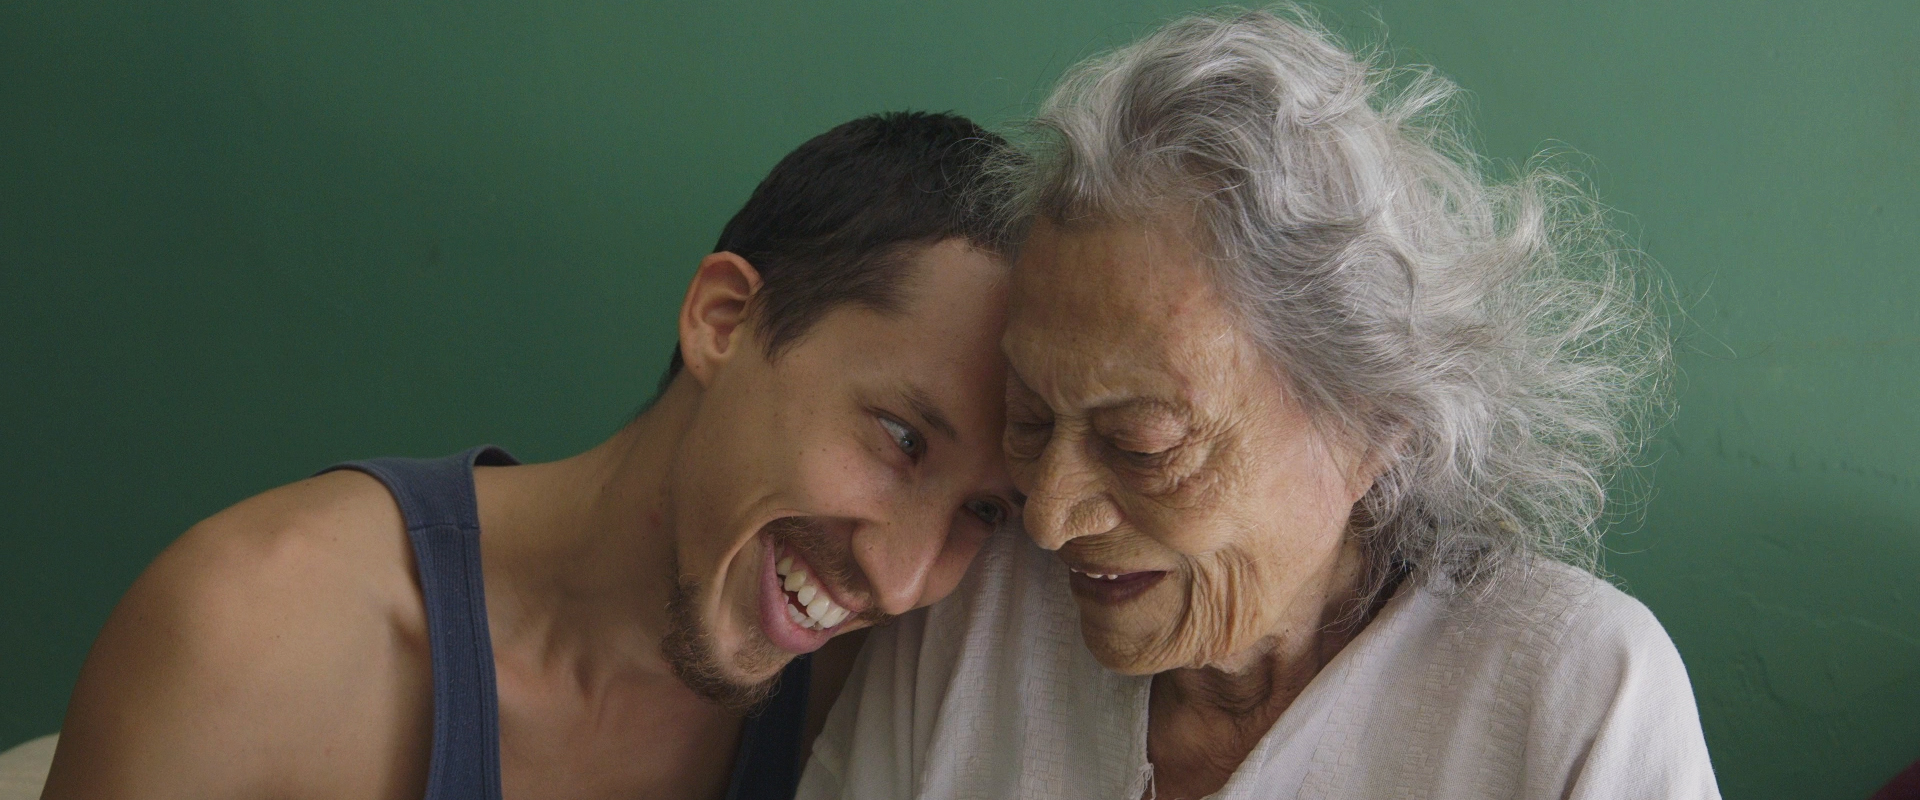 Family and Caregiving: The Challenge of Caring for Our Elders